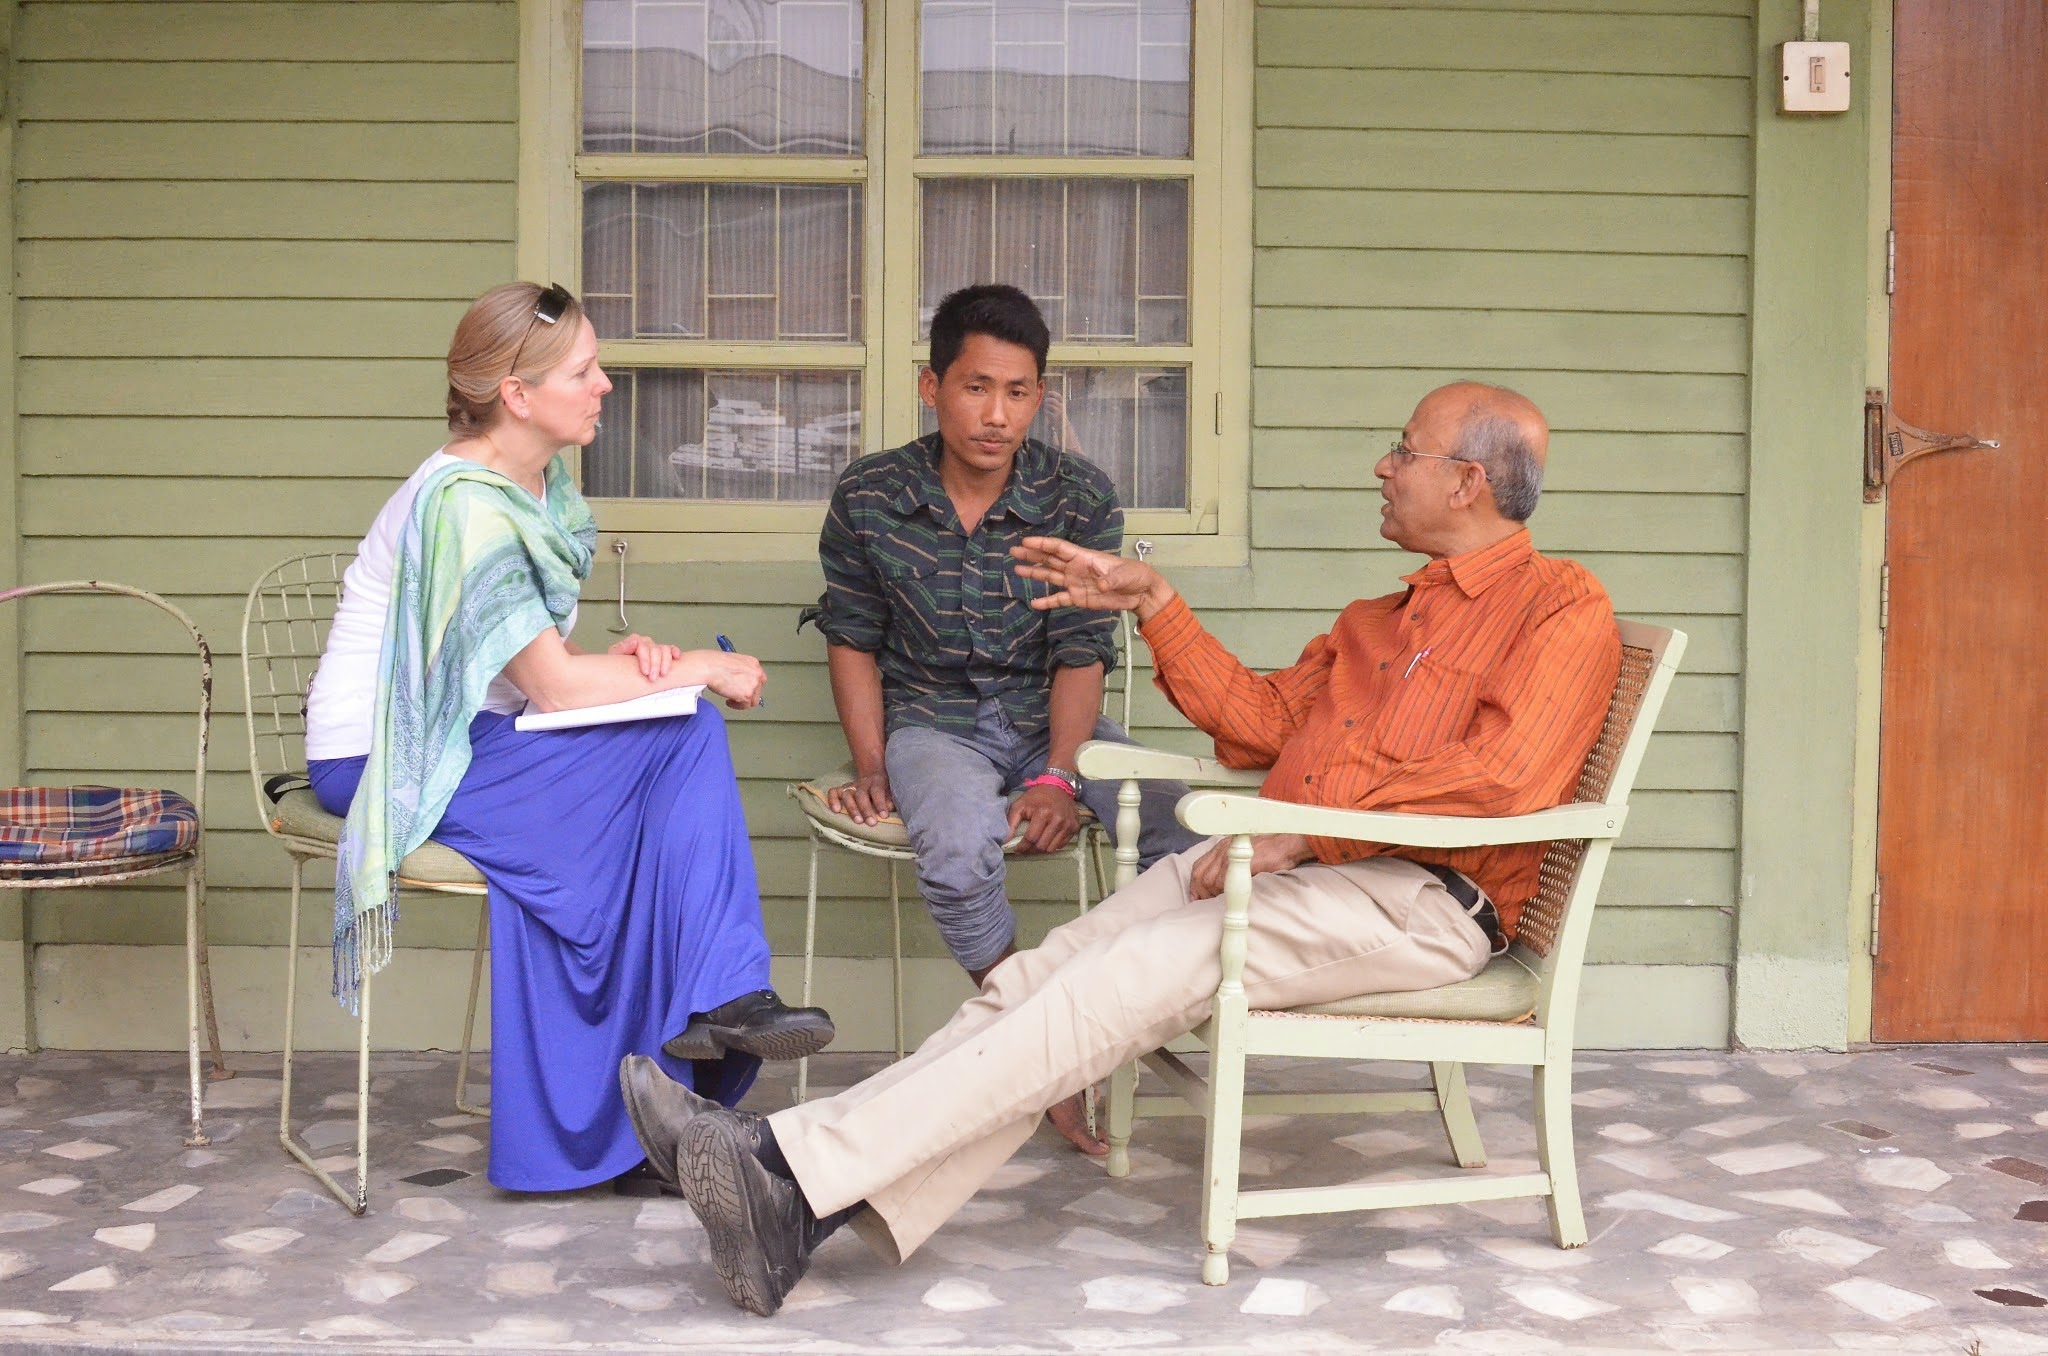 Founding funder, Suzanne Skees of the Skees Family Foundation (left) talking with the Co-Founder of Elrhino, Mahesh (right), and a jobholder of the company (center).